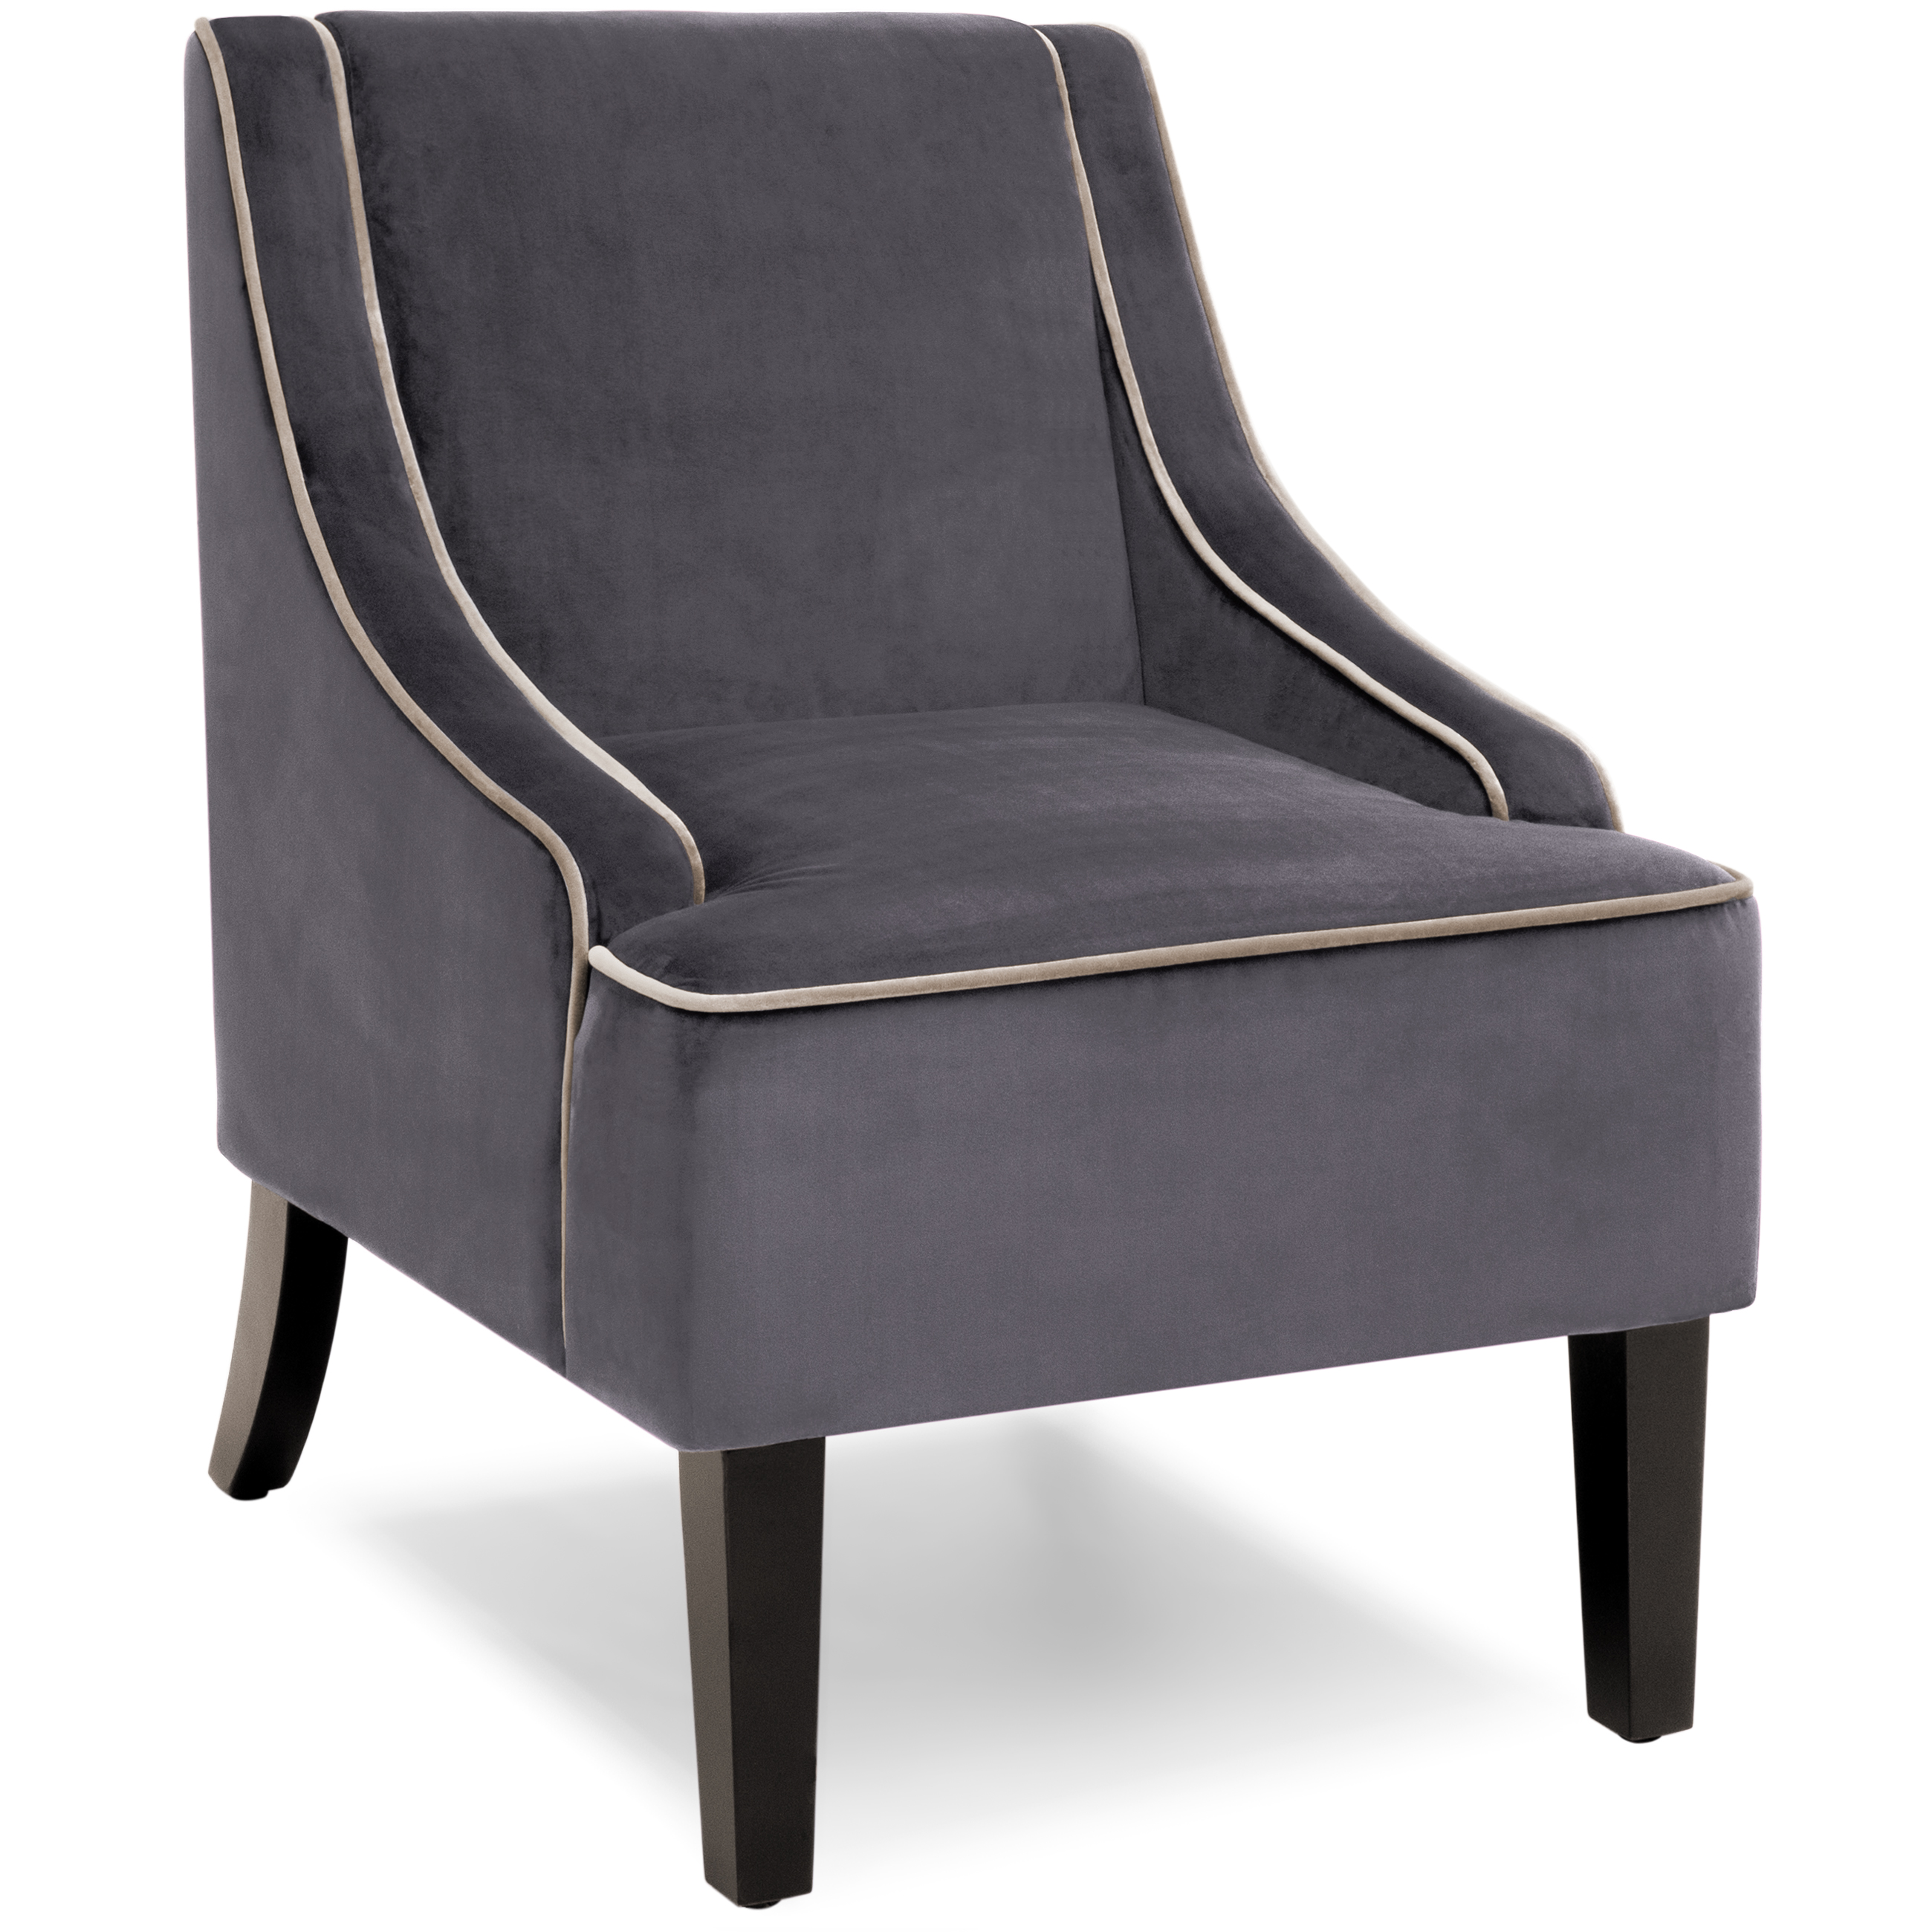 Best Choice Products Microfiber Accent Chair w/ Tapered Wood Legs (Gray)